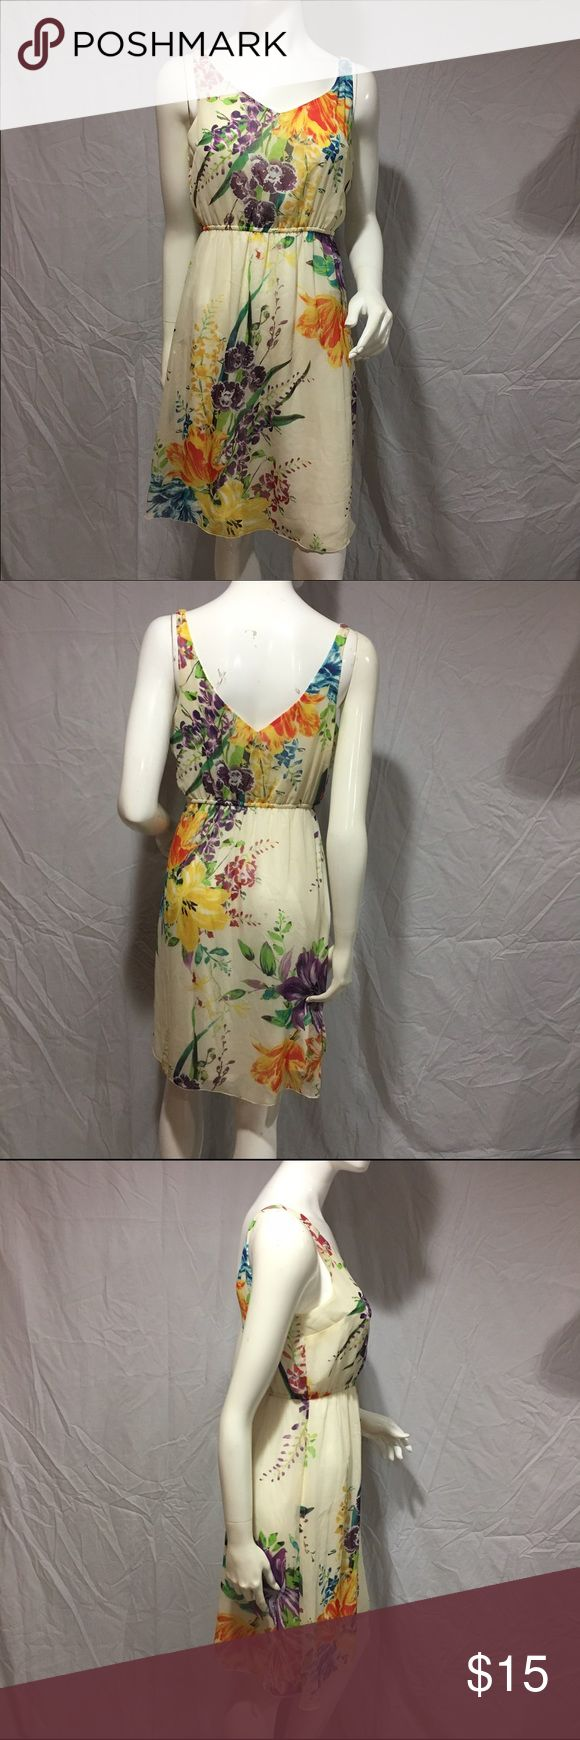 "Floral dress Cute cream colored dress with different color floral design. Has a band under the chest and is loose fitting. Front and back both have a v neckline. 31"" from the middle of the chest (bottom of V) to the bottom of dress. In great condition. Feel free to make me a reasonable offer 💕 Old Navy Dresses Midi"